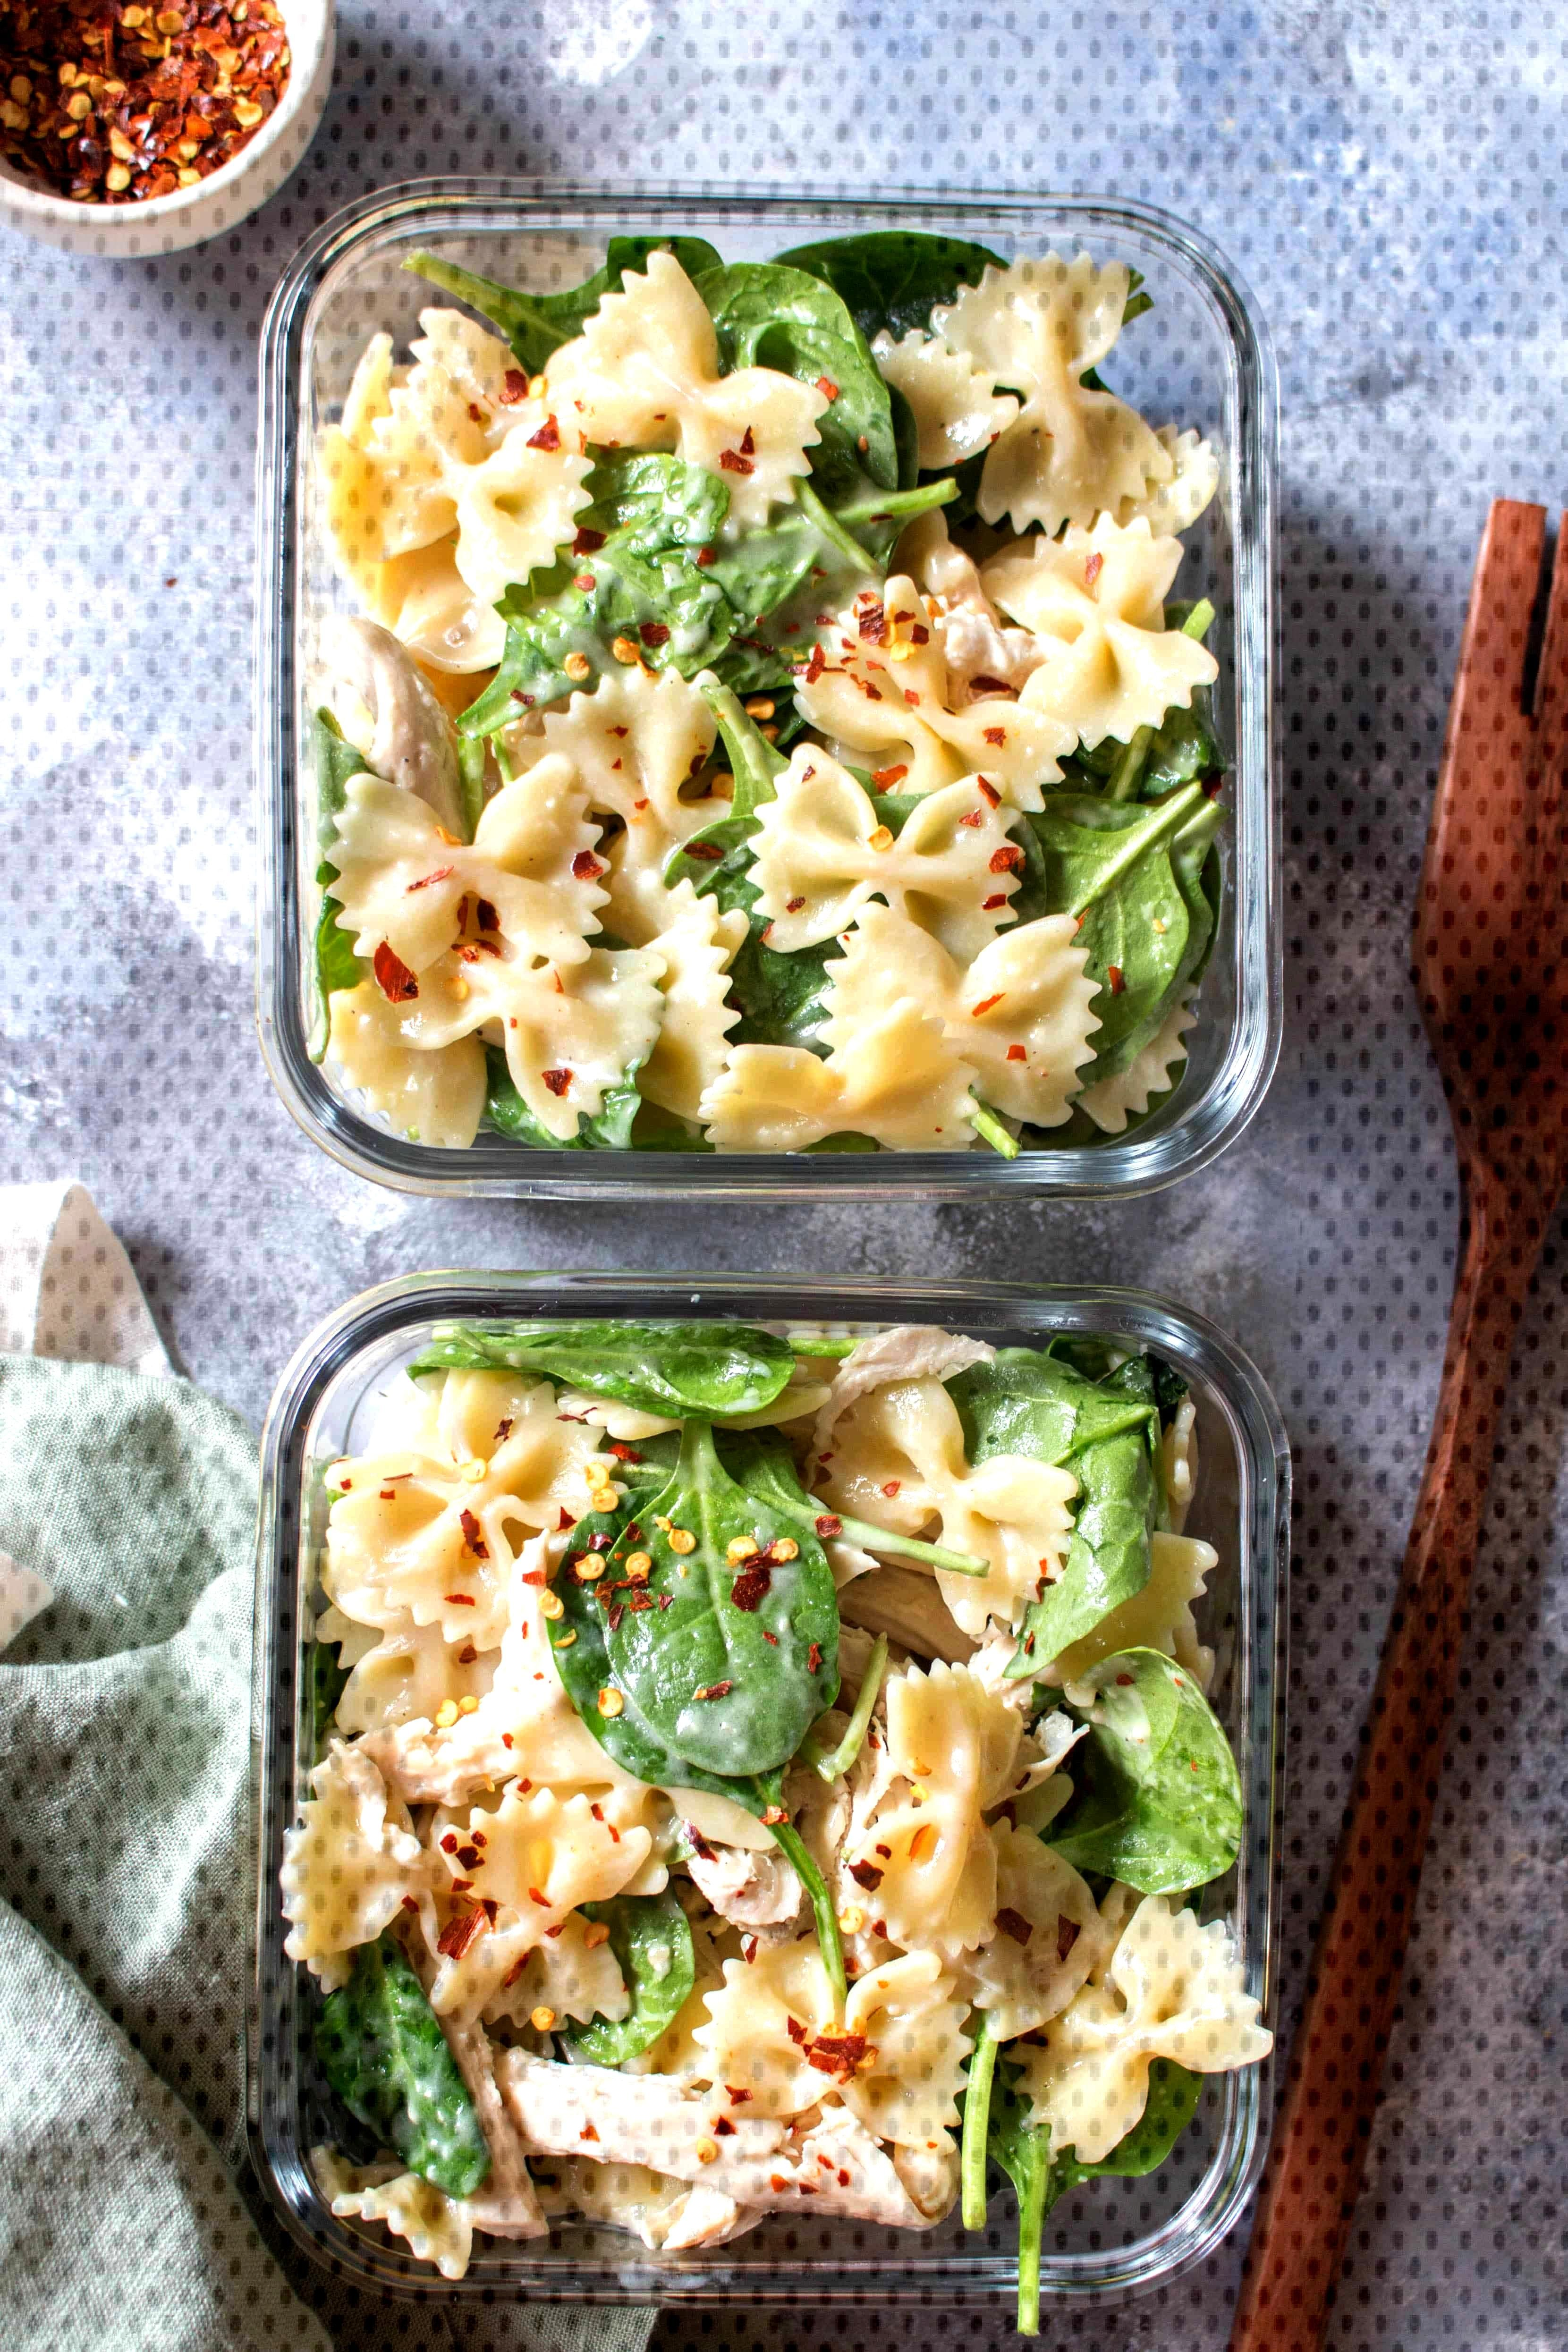 ThisCold Chicken Spinach Pasta Salad is the perfect easy cold meal prep idea or a dish for a potl